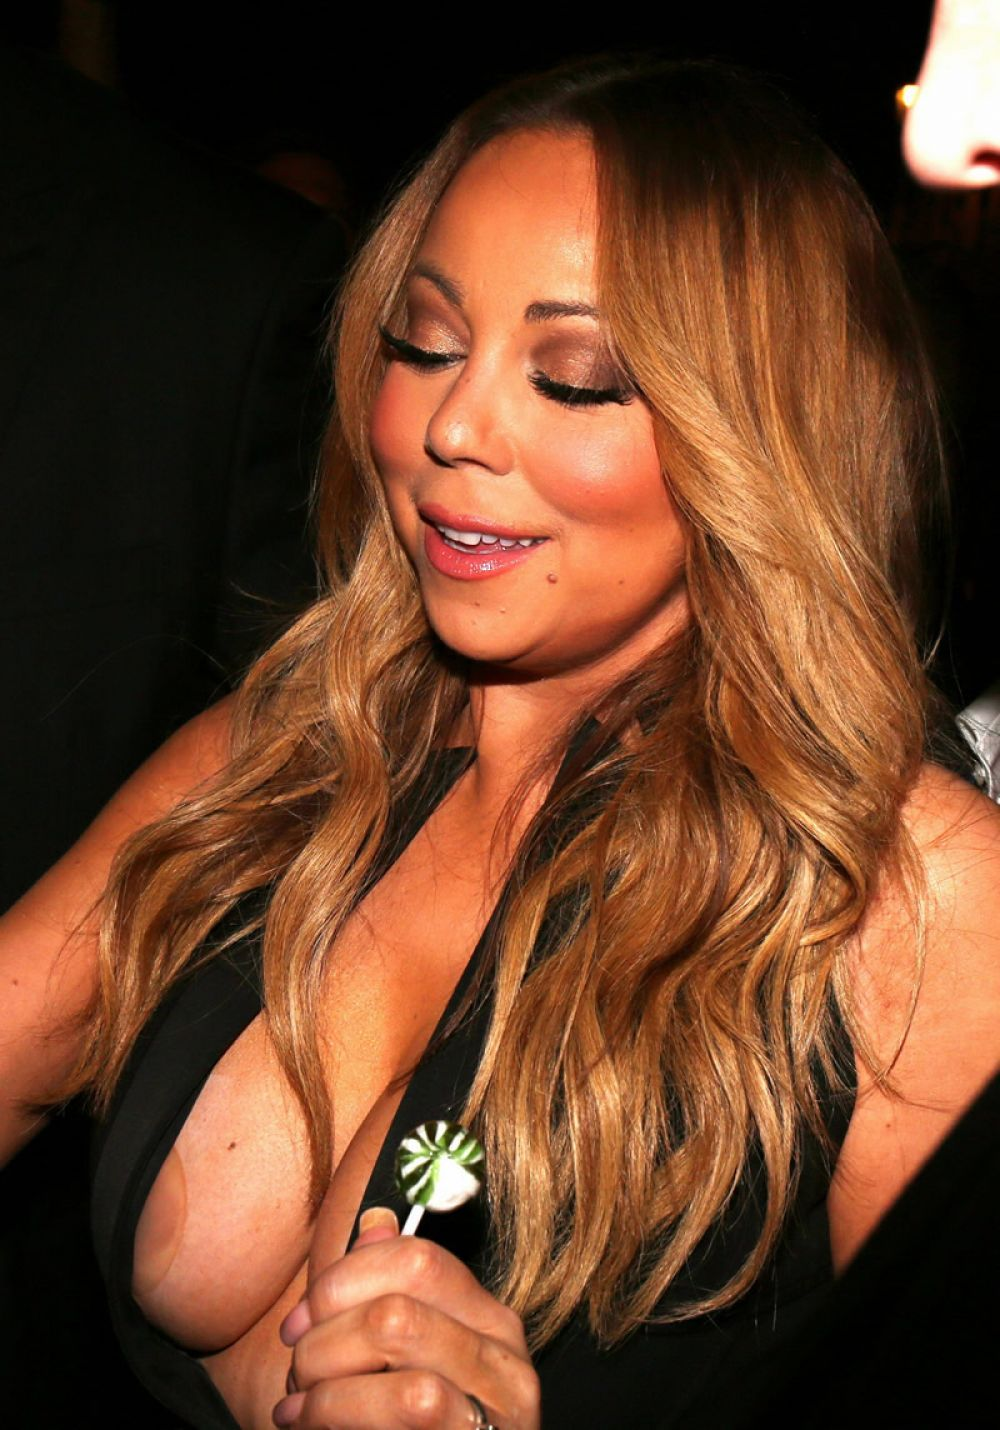 mariah-carey-at-vip-room-at-accor-hotels-arena-in-paris-04